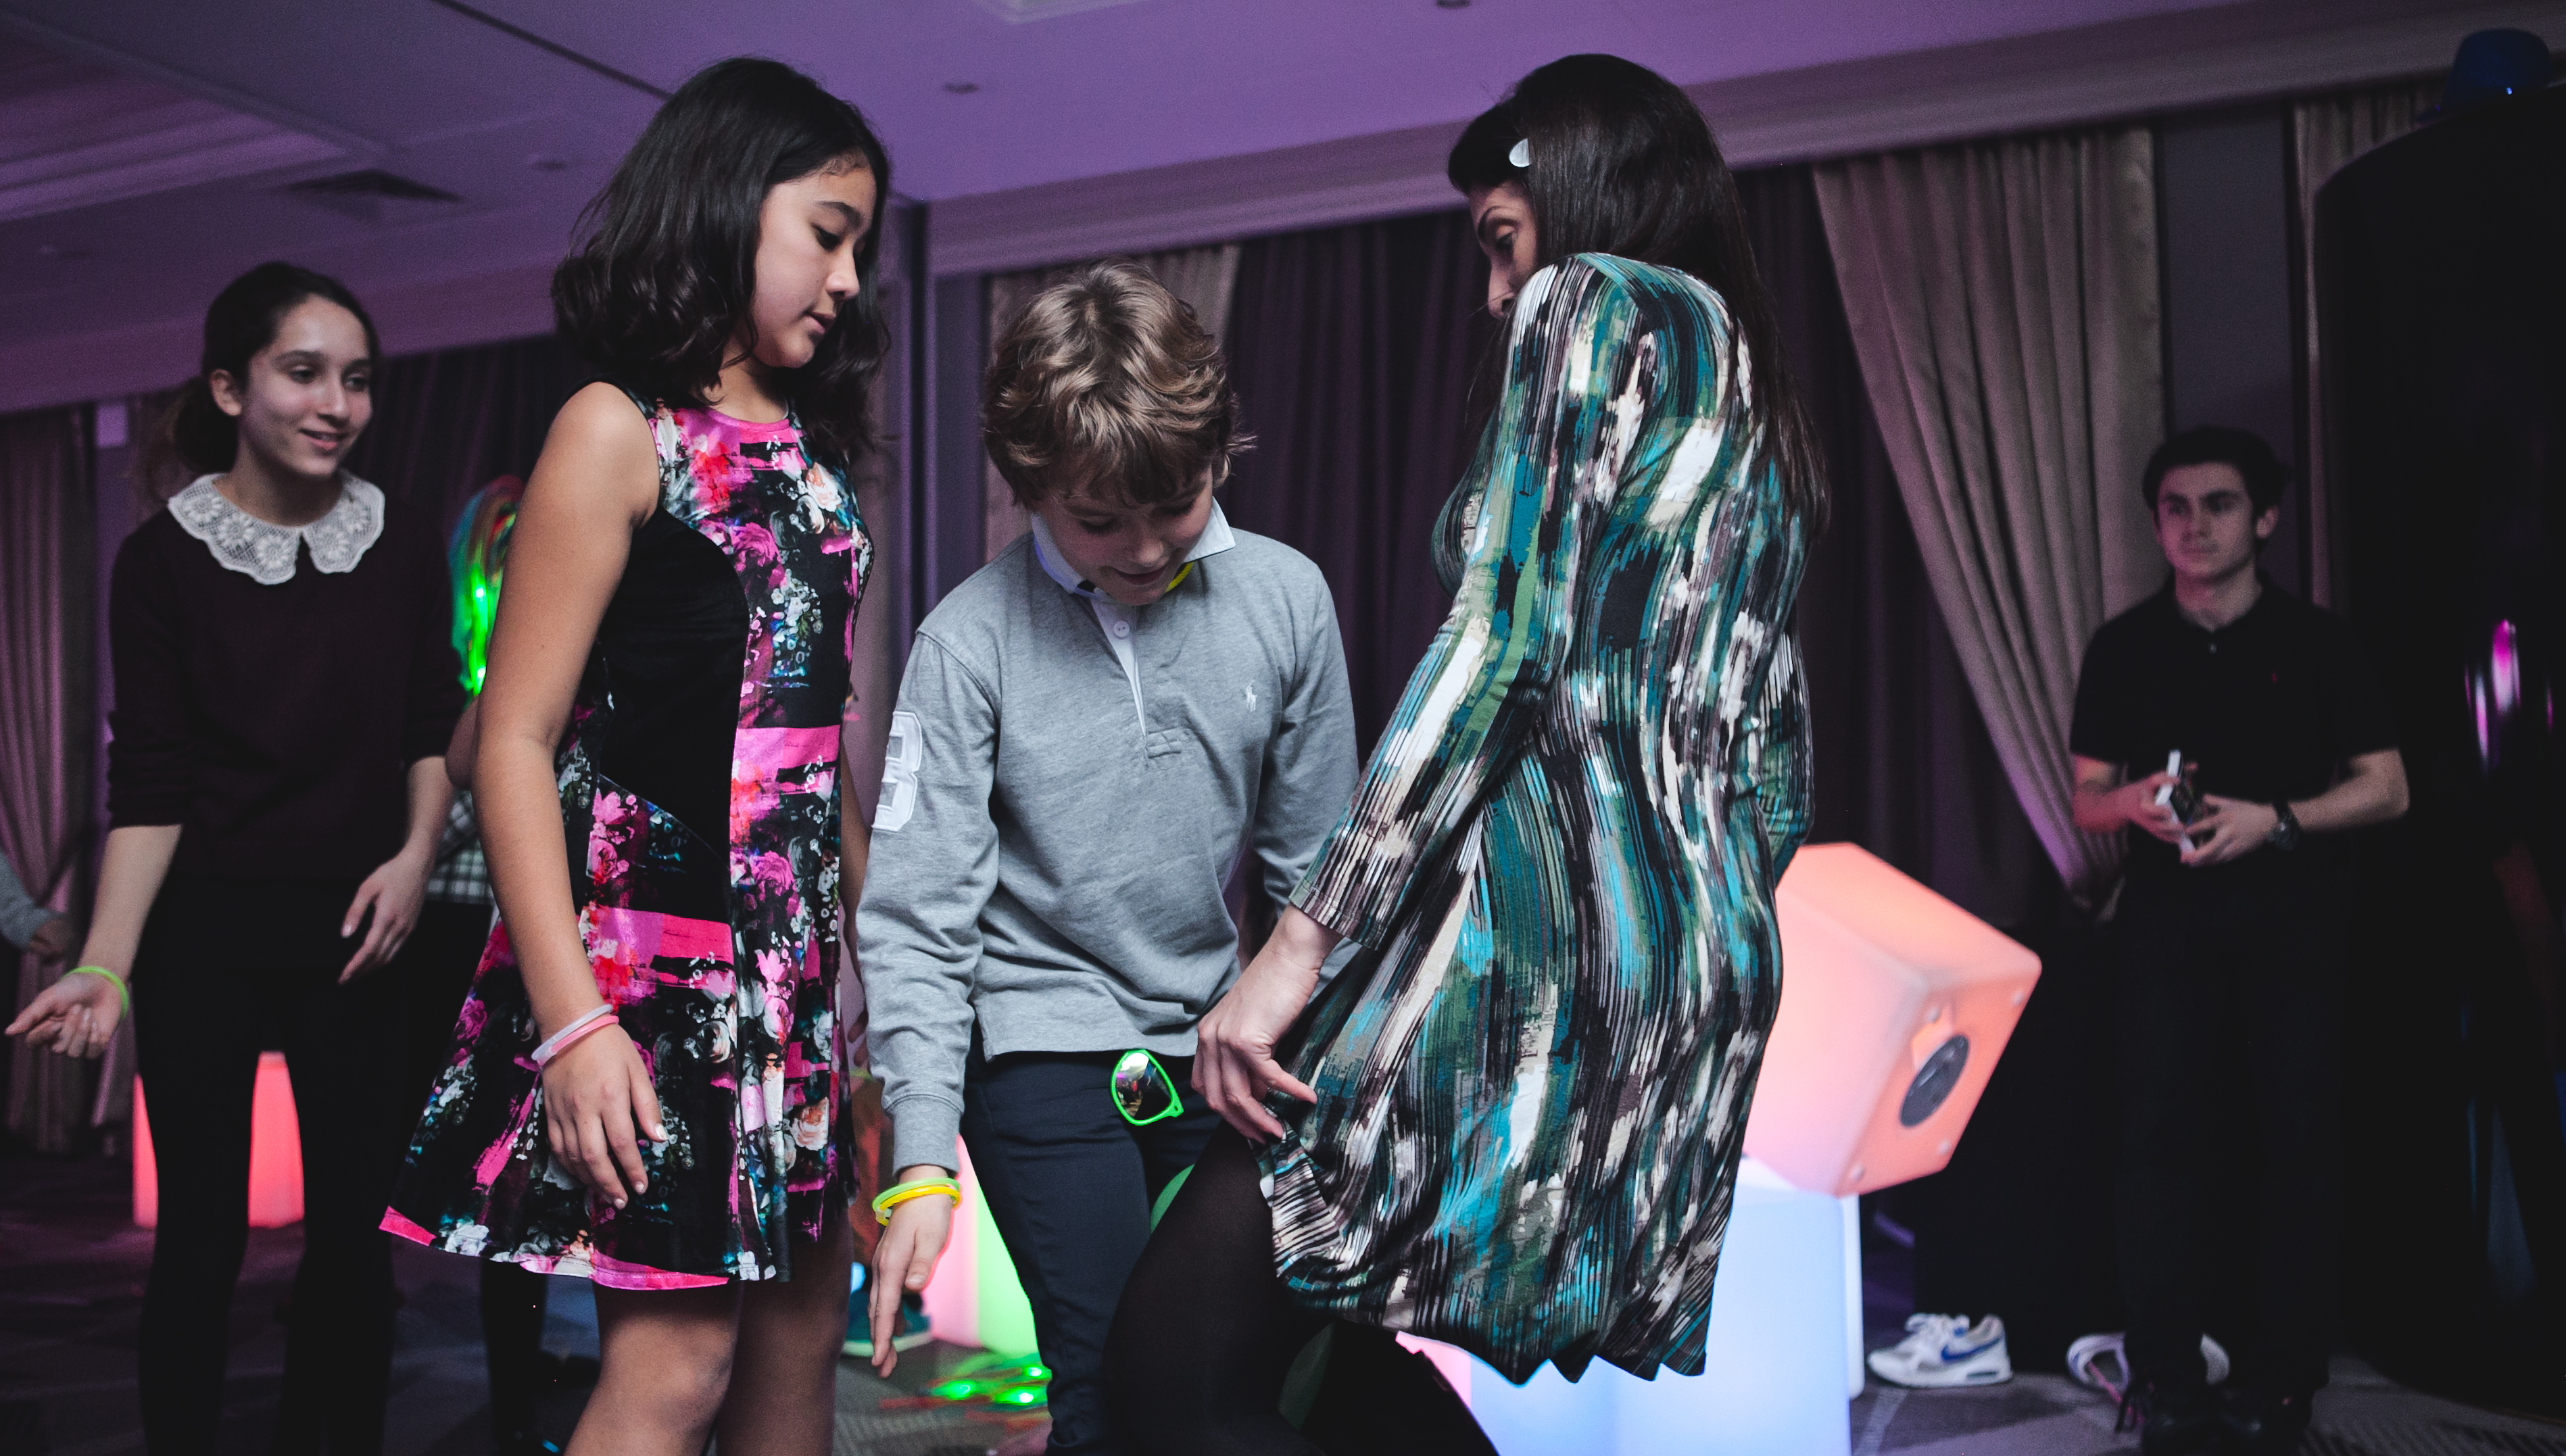 Childrens Party DJ | Bar Mitzvah DJ